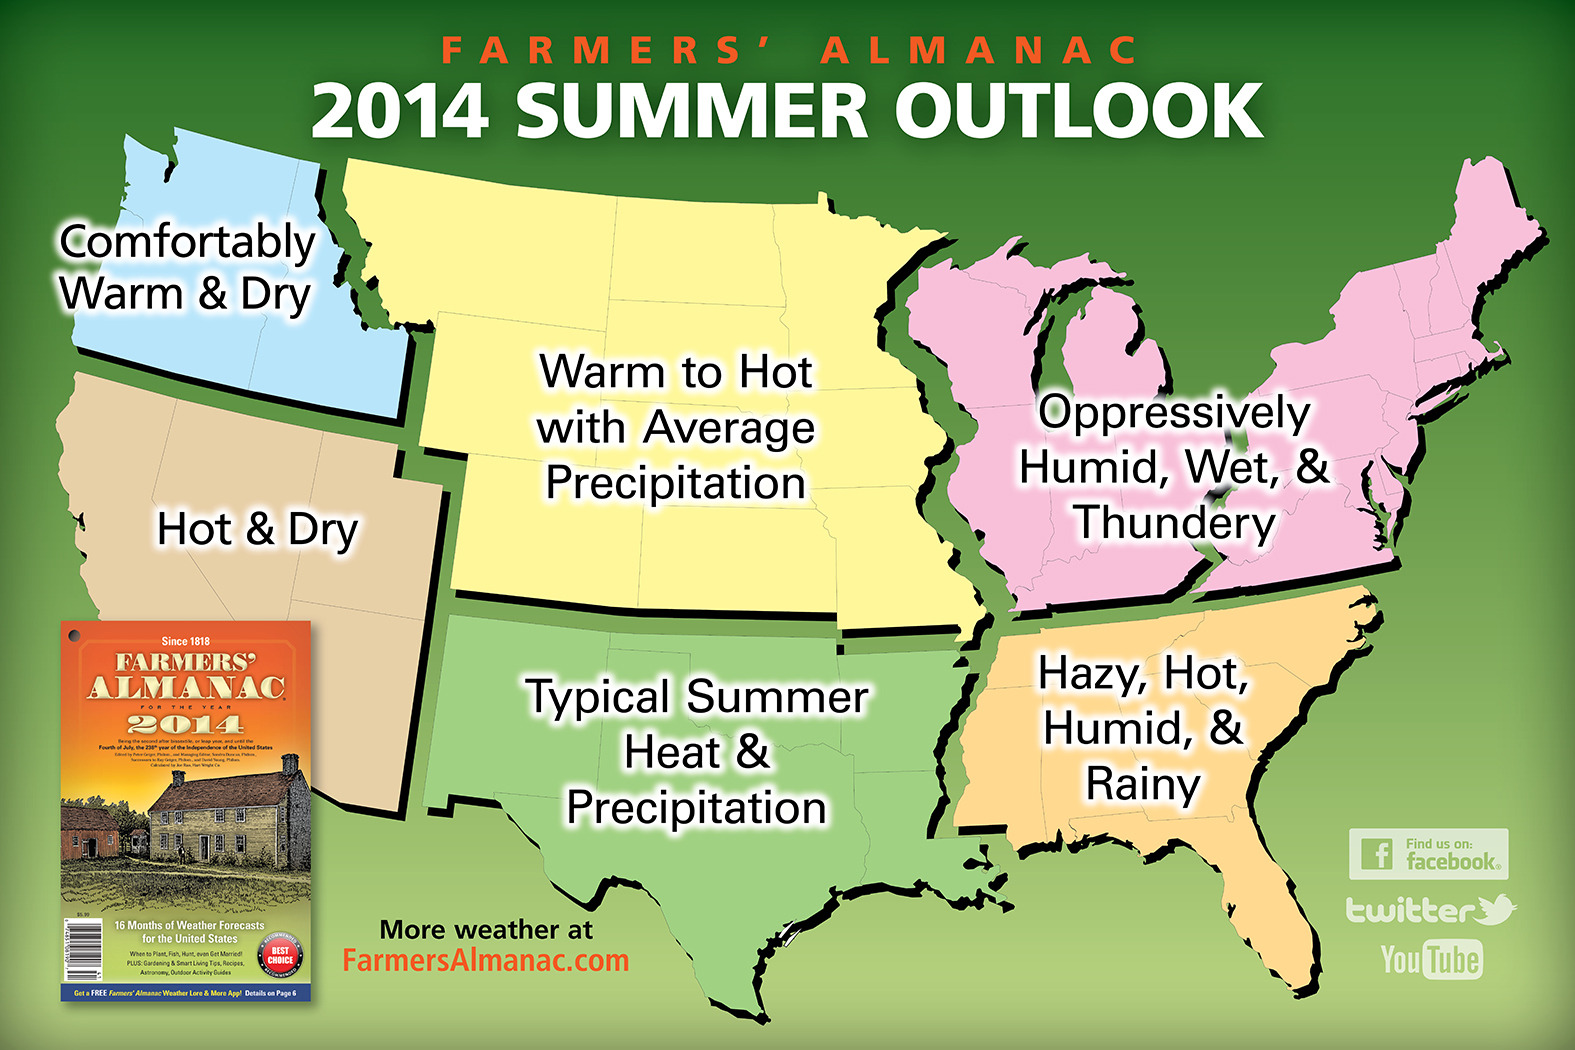 8dfc618e169781415b51_2014_Farmers_Almanac_-_Summer_Map.jpg